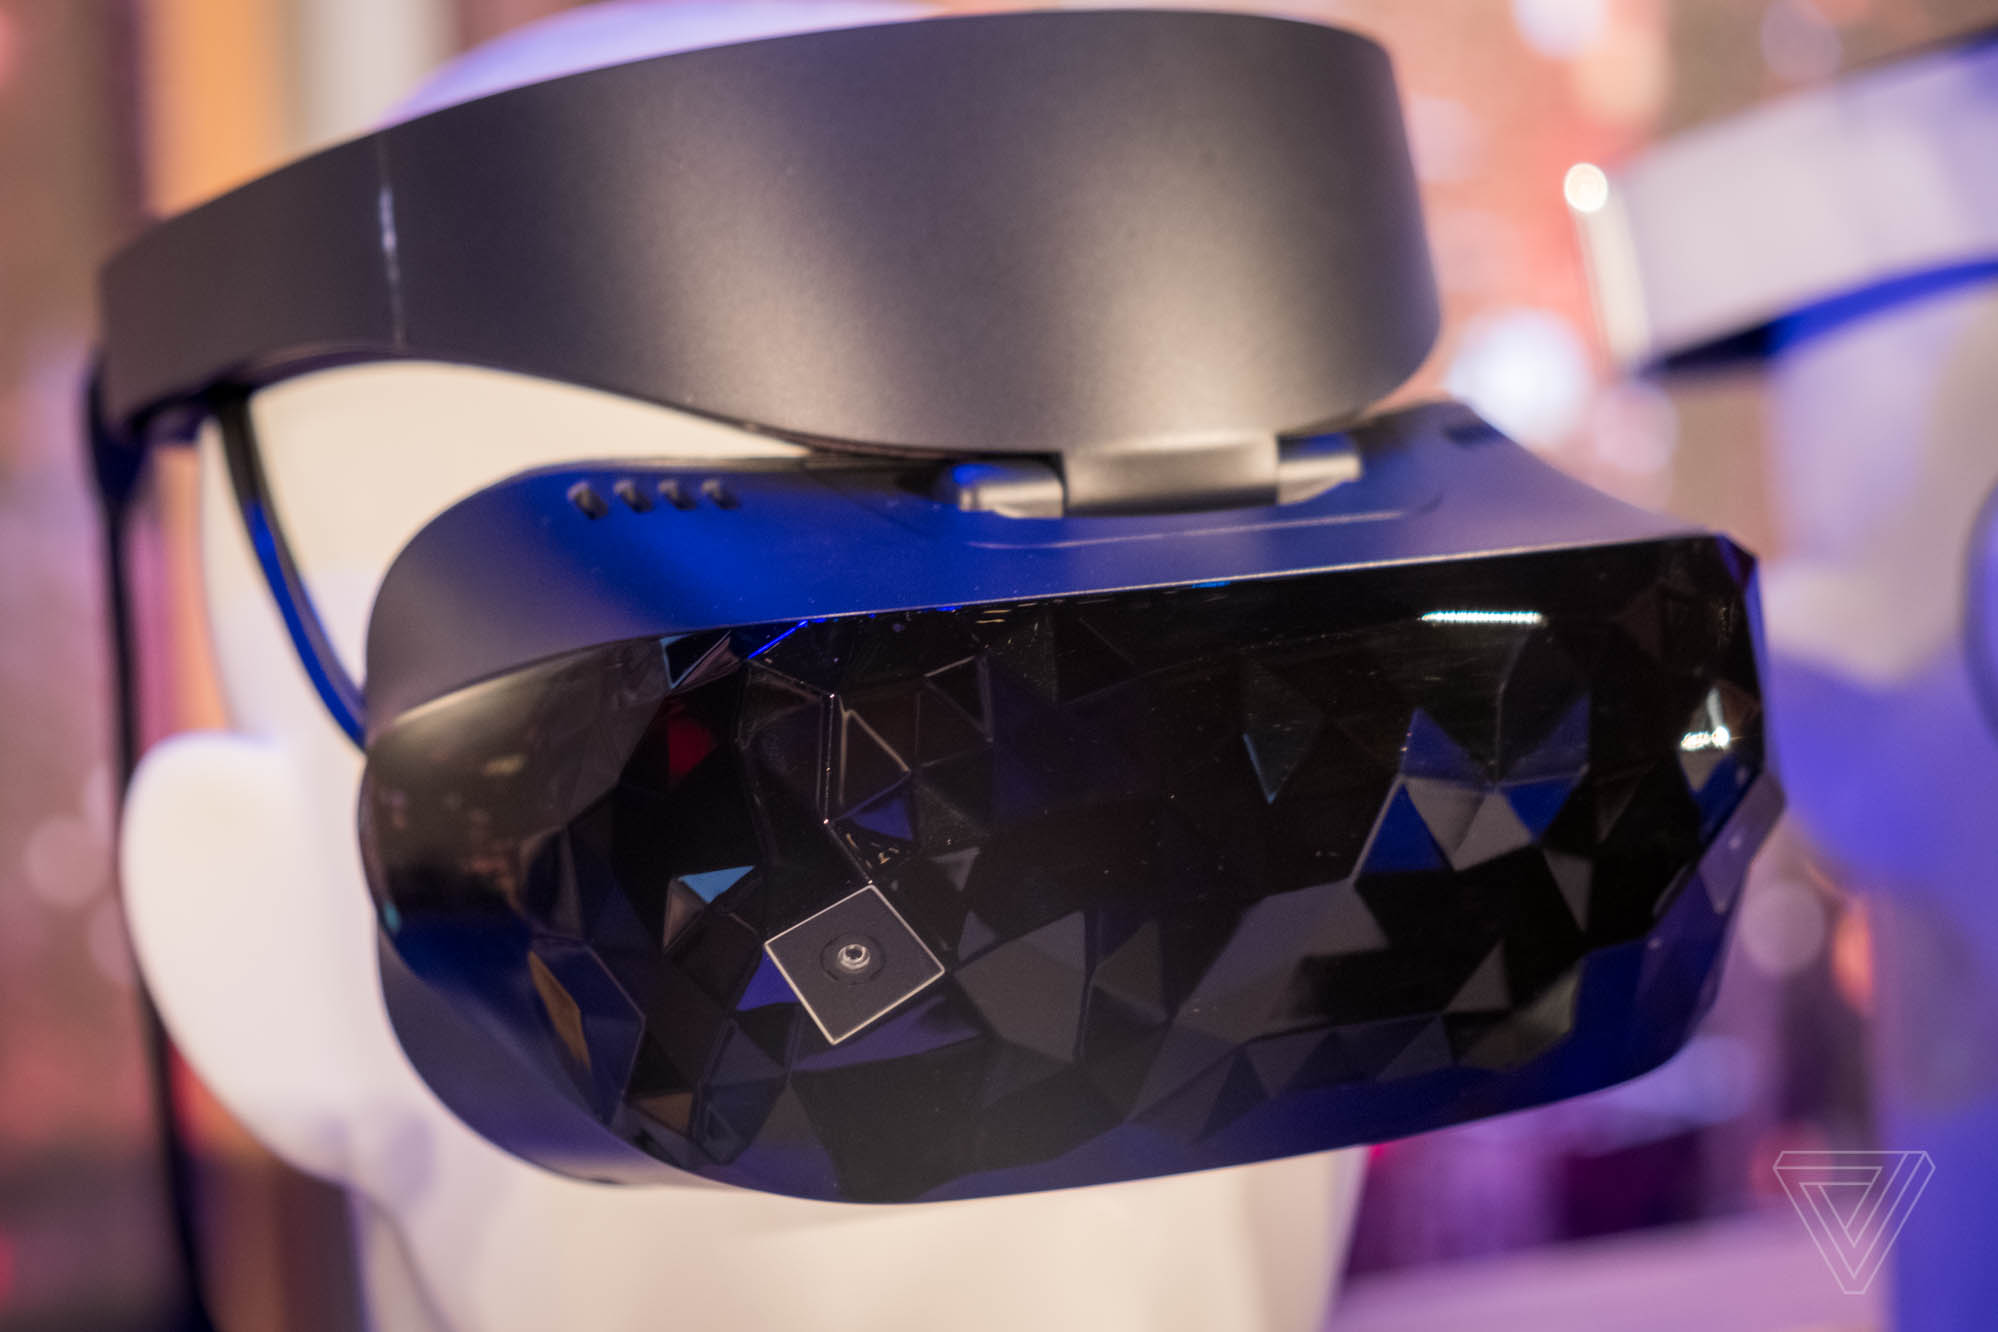 ASUS Dell Windows Mixed Reality headsets 600 02